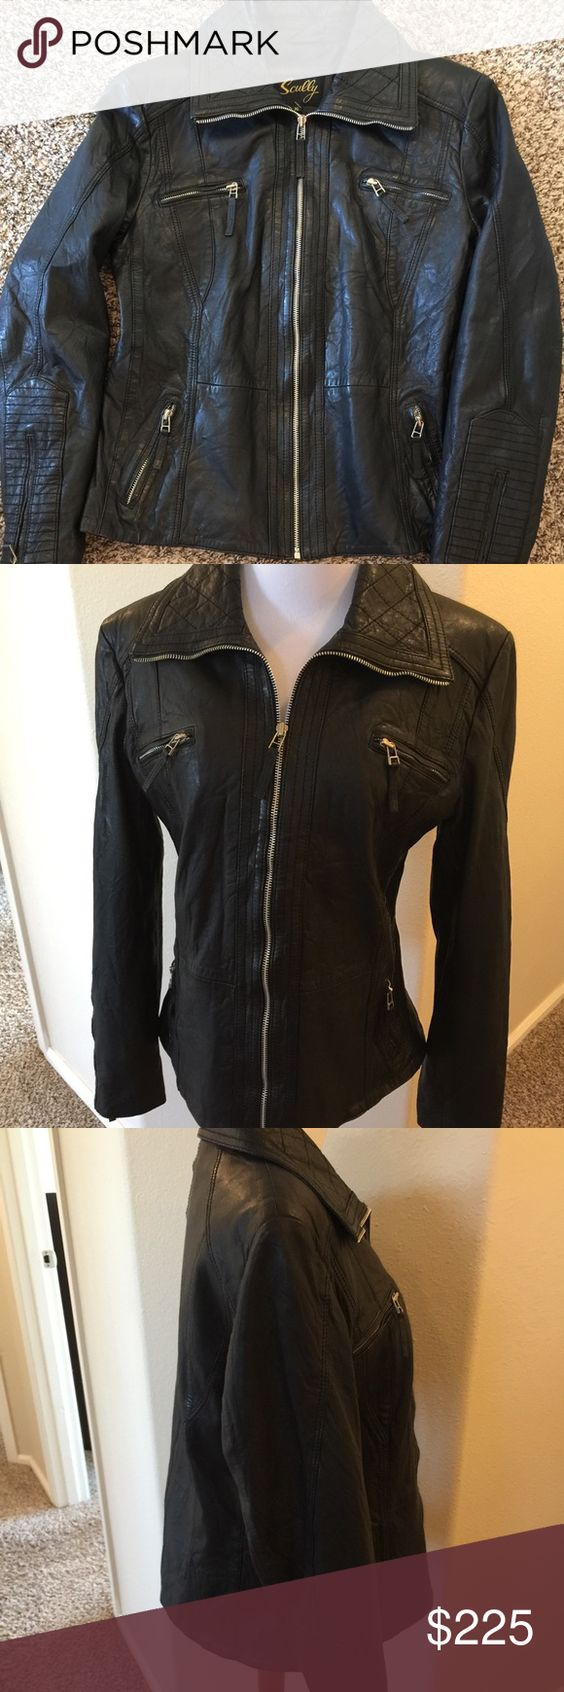 Leather jacket xl size - Scully Black Leather Moto Jacket Xl Awesome Black Leather Jacket Excellent Condition Size Xl But Runs